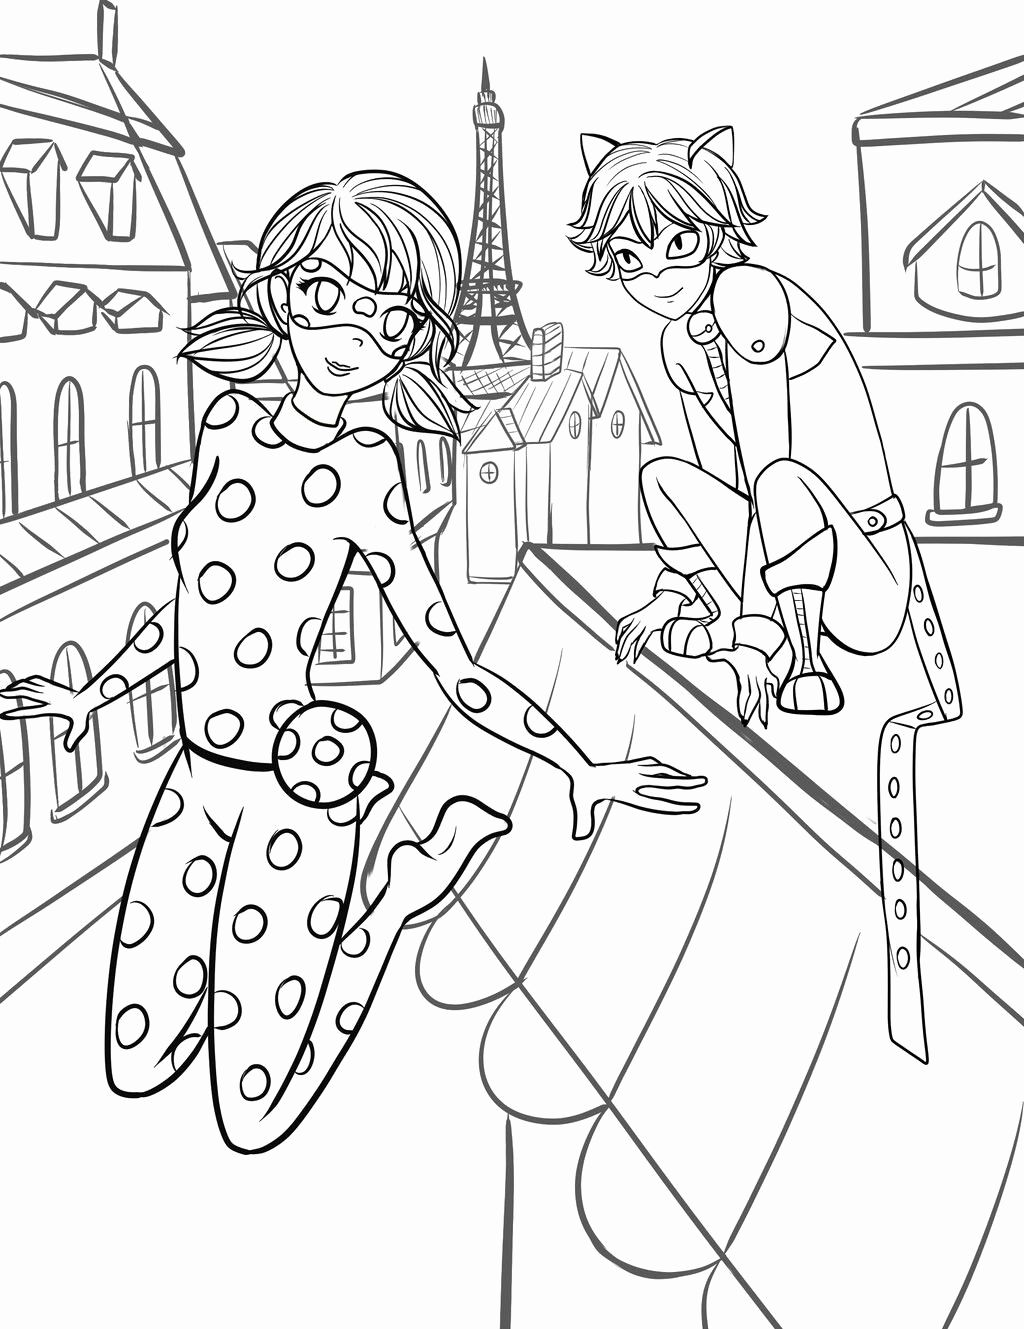 Coloring Pages Of Anime Ladybug And Cat Noir Together For Kids In 2020 Ladybug Coloring Page Butterfly Coloring Page Coloring Books